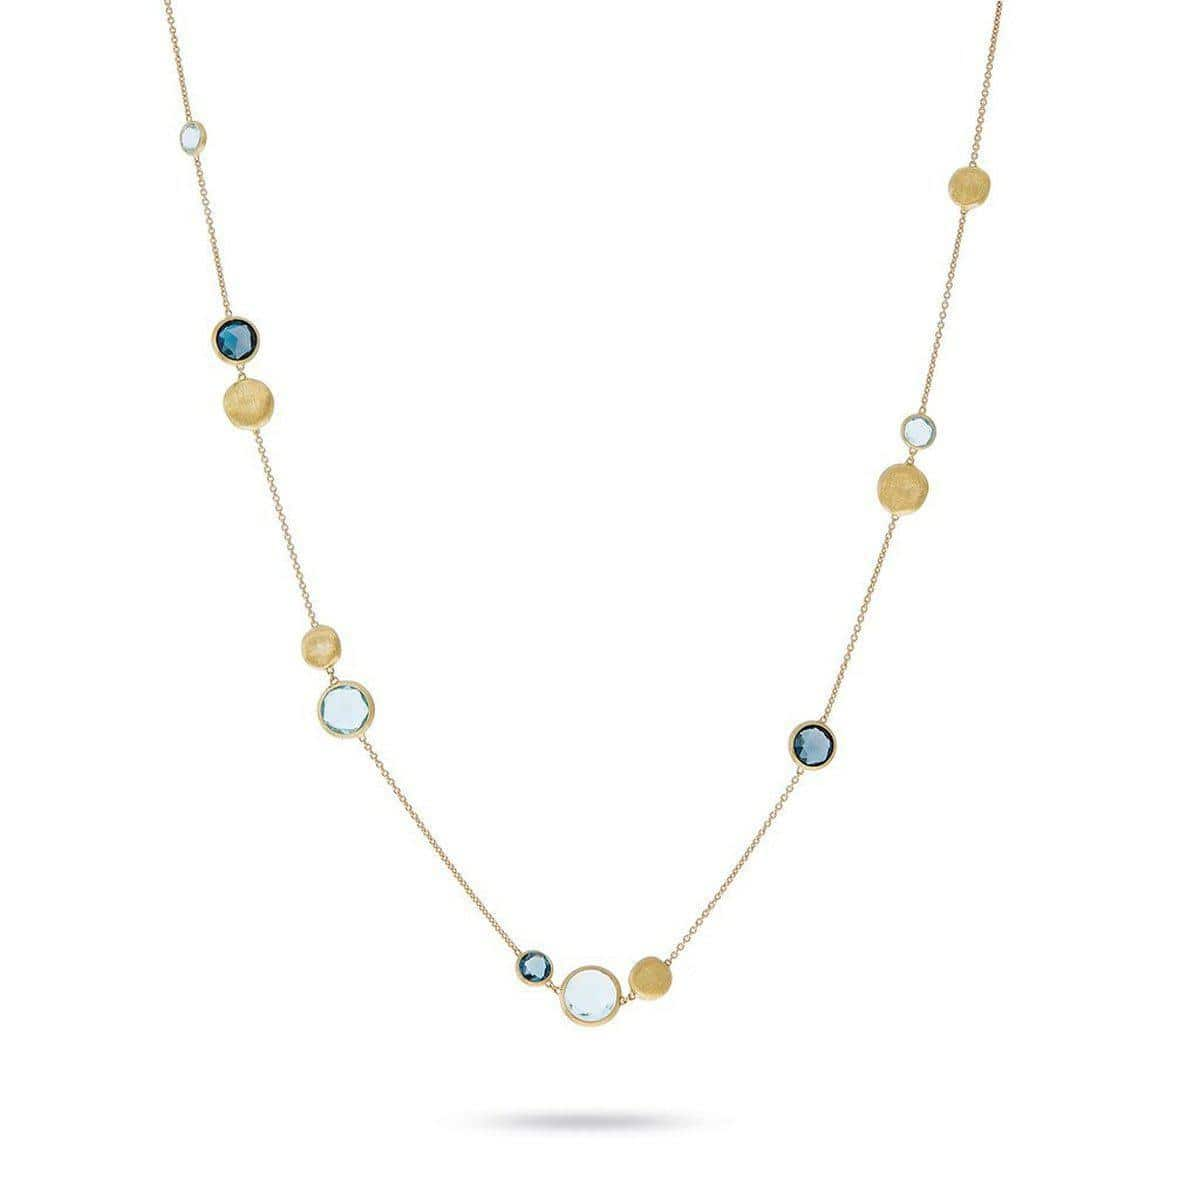 18K Jaipur Necklace - CB1485 MIX725 Y 16.25""